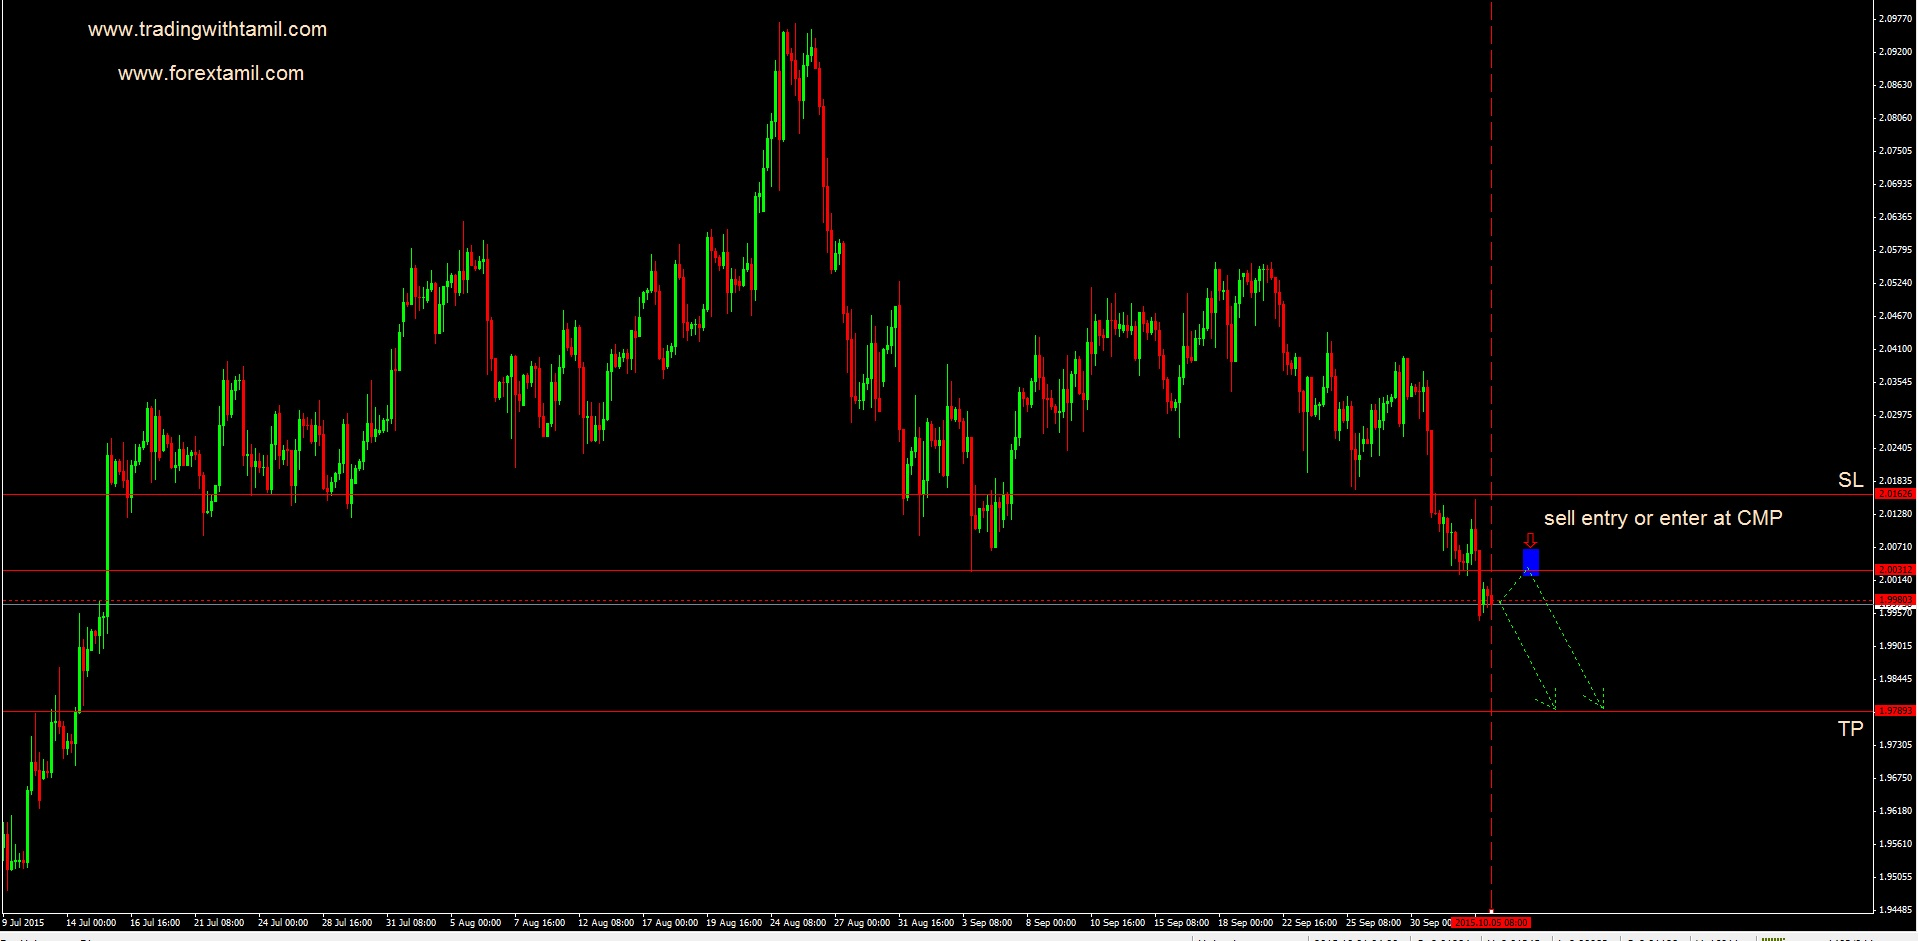 Q-FOREX LIVE CHALLENGING SIGNAL 05 Oct 2015 – SELL GBP/CAD